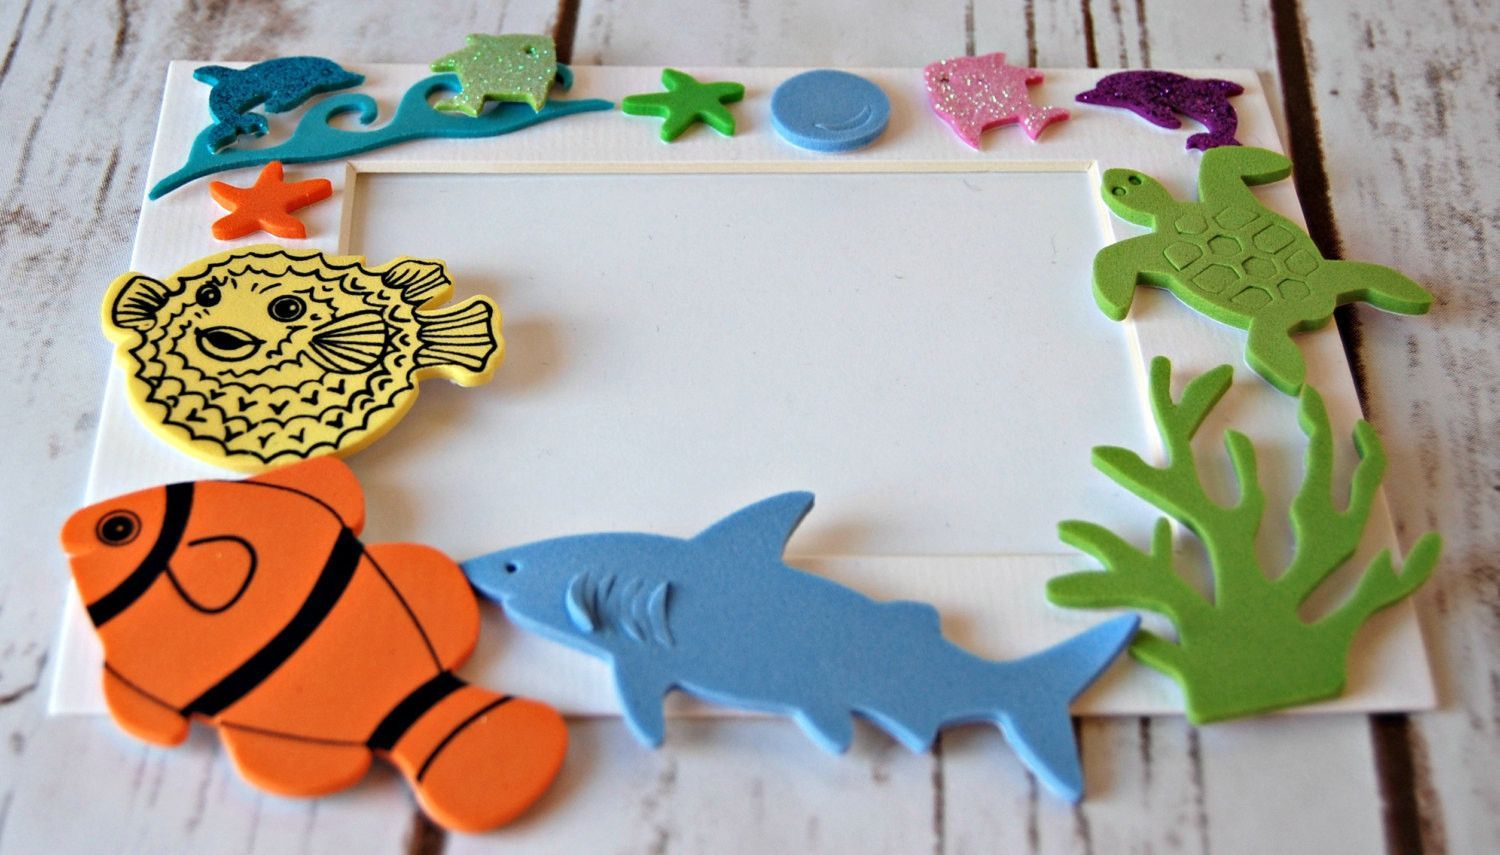 Under the Sea Themed Photo Frame Craft Kit | Pinterest | Photo frame ...